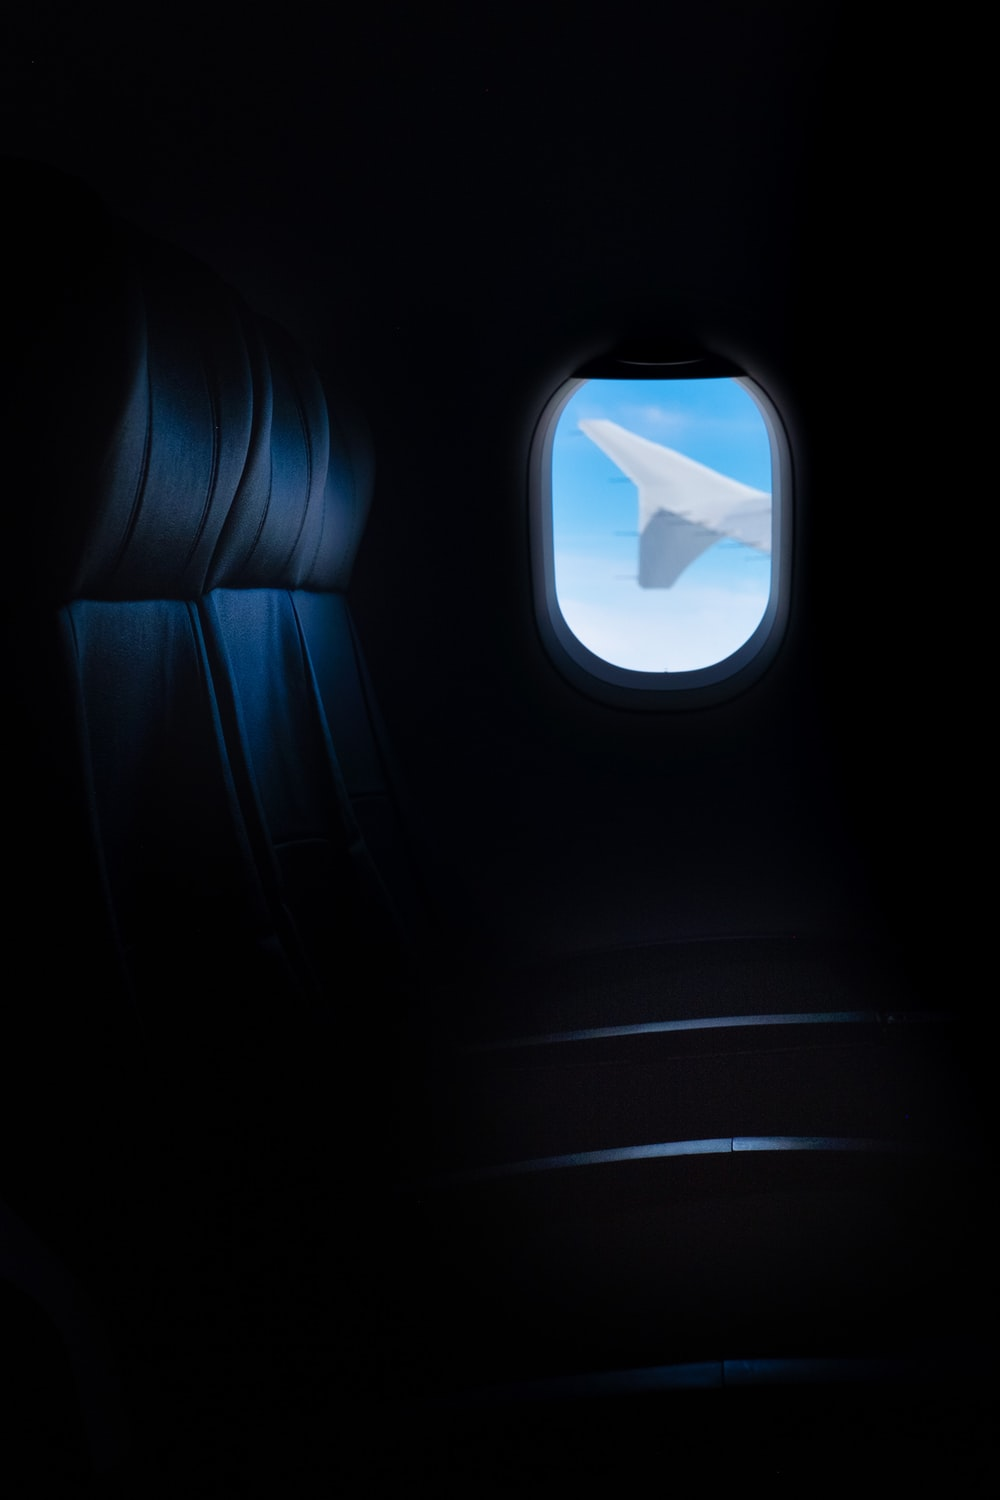 airplane window with white clouds